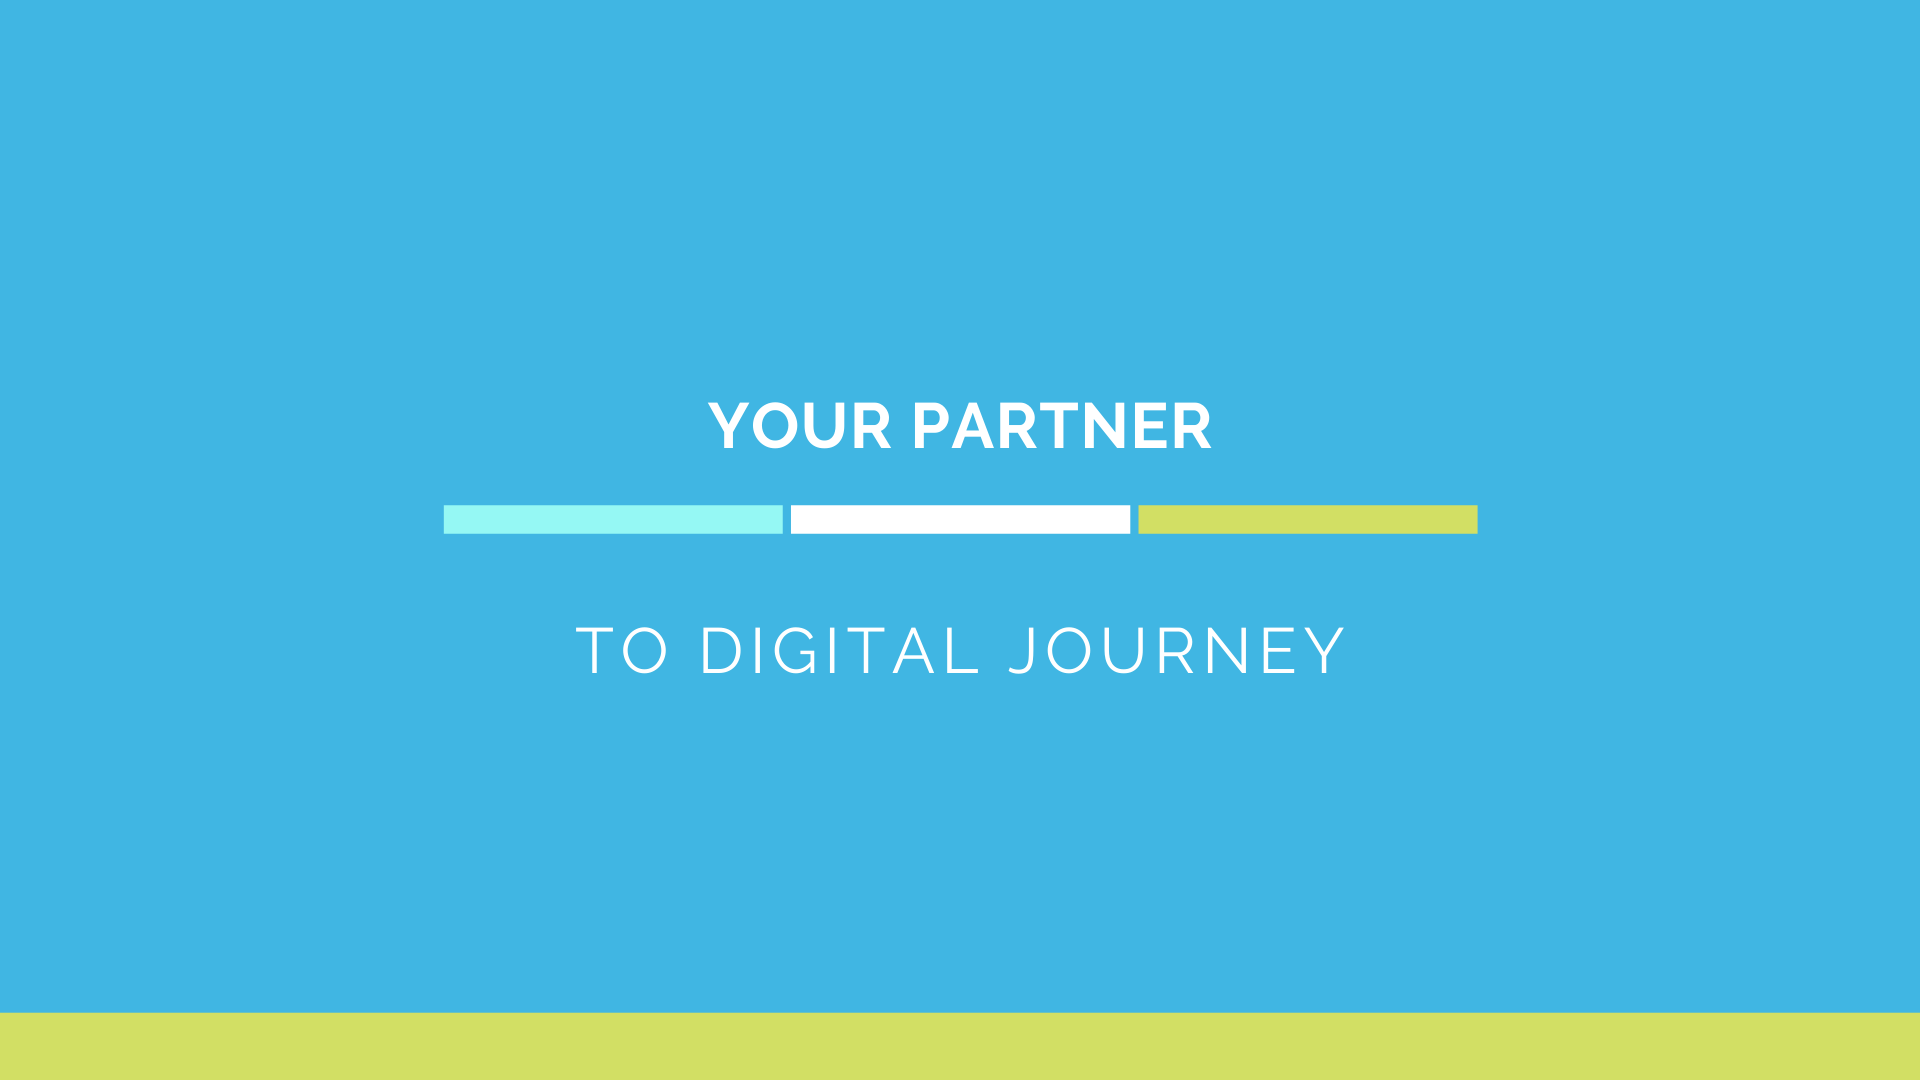 Partner to Digital Journey